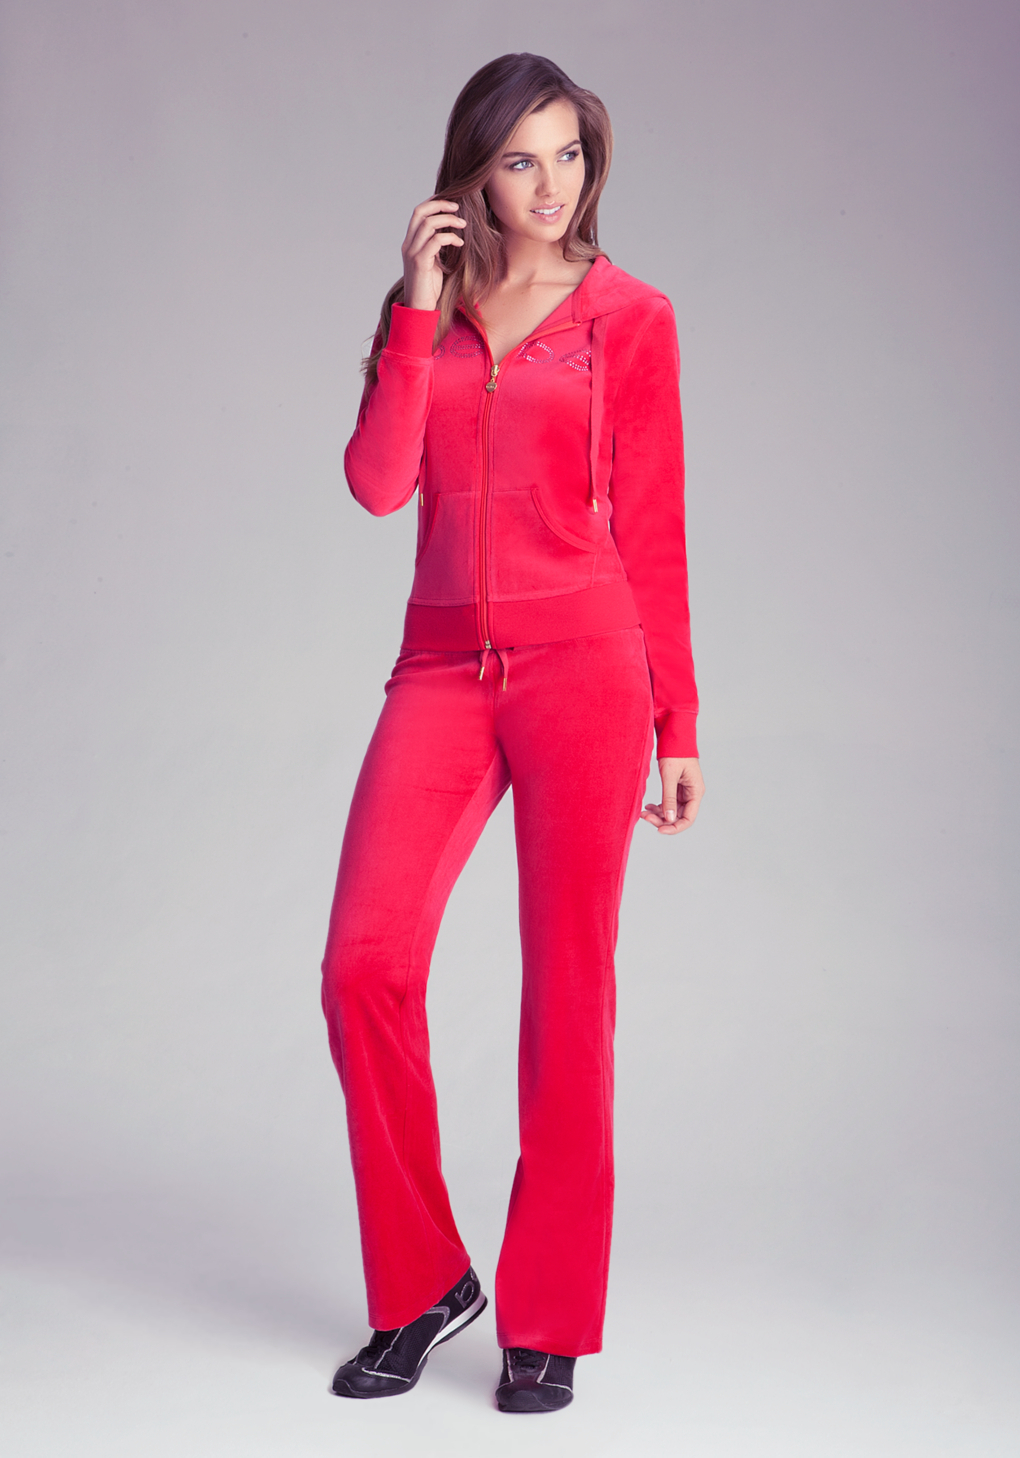 Watch Velour Tracksuit porn videos for free, here on paydayloansboise.gq Discover the growing collection of high quality Most Relevant XXX movies and clips. No other sex tube is more popular and features more Velour Tracksuit scenes than Pornhub! Browse through our impressive selection of porn videos in HD quality on any device you own.